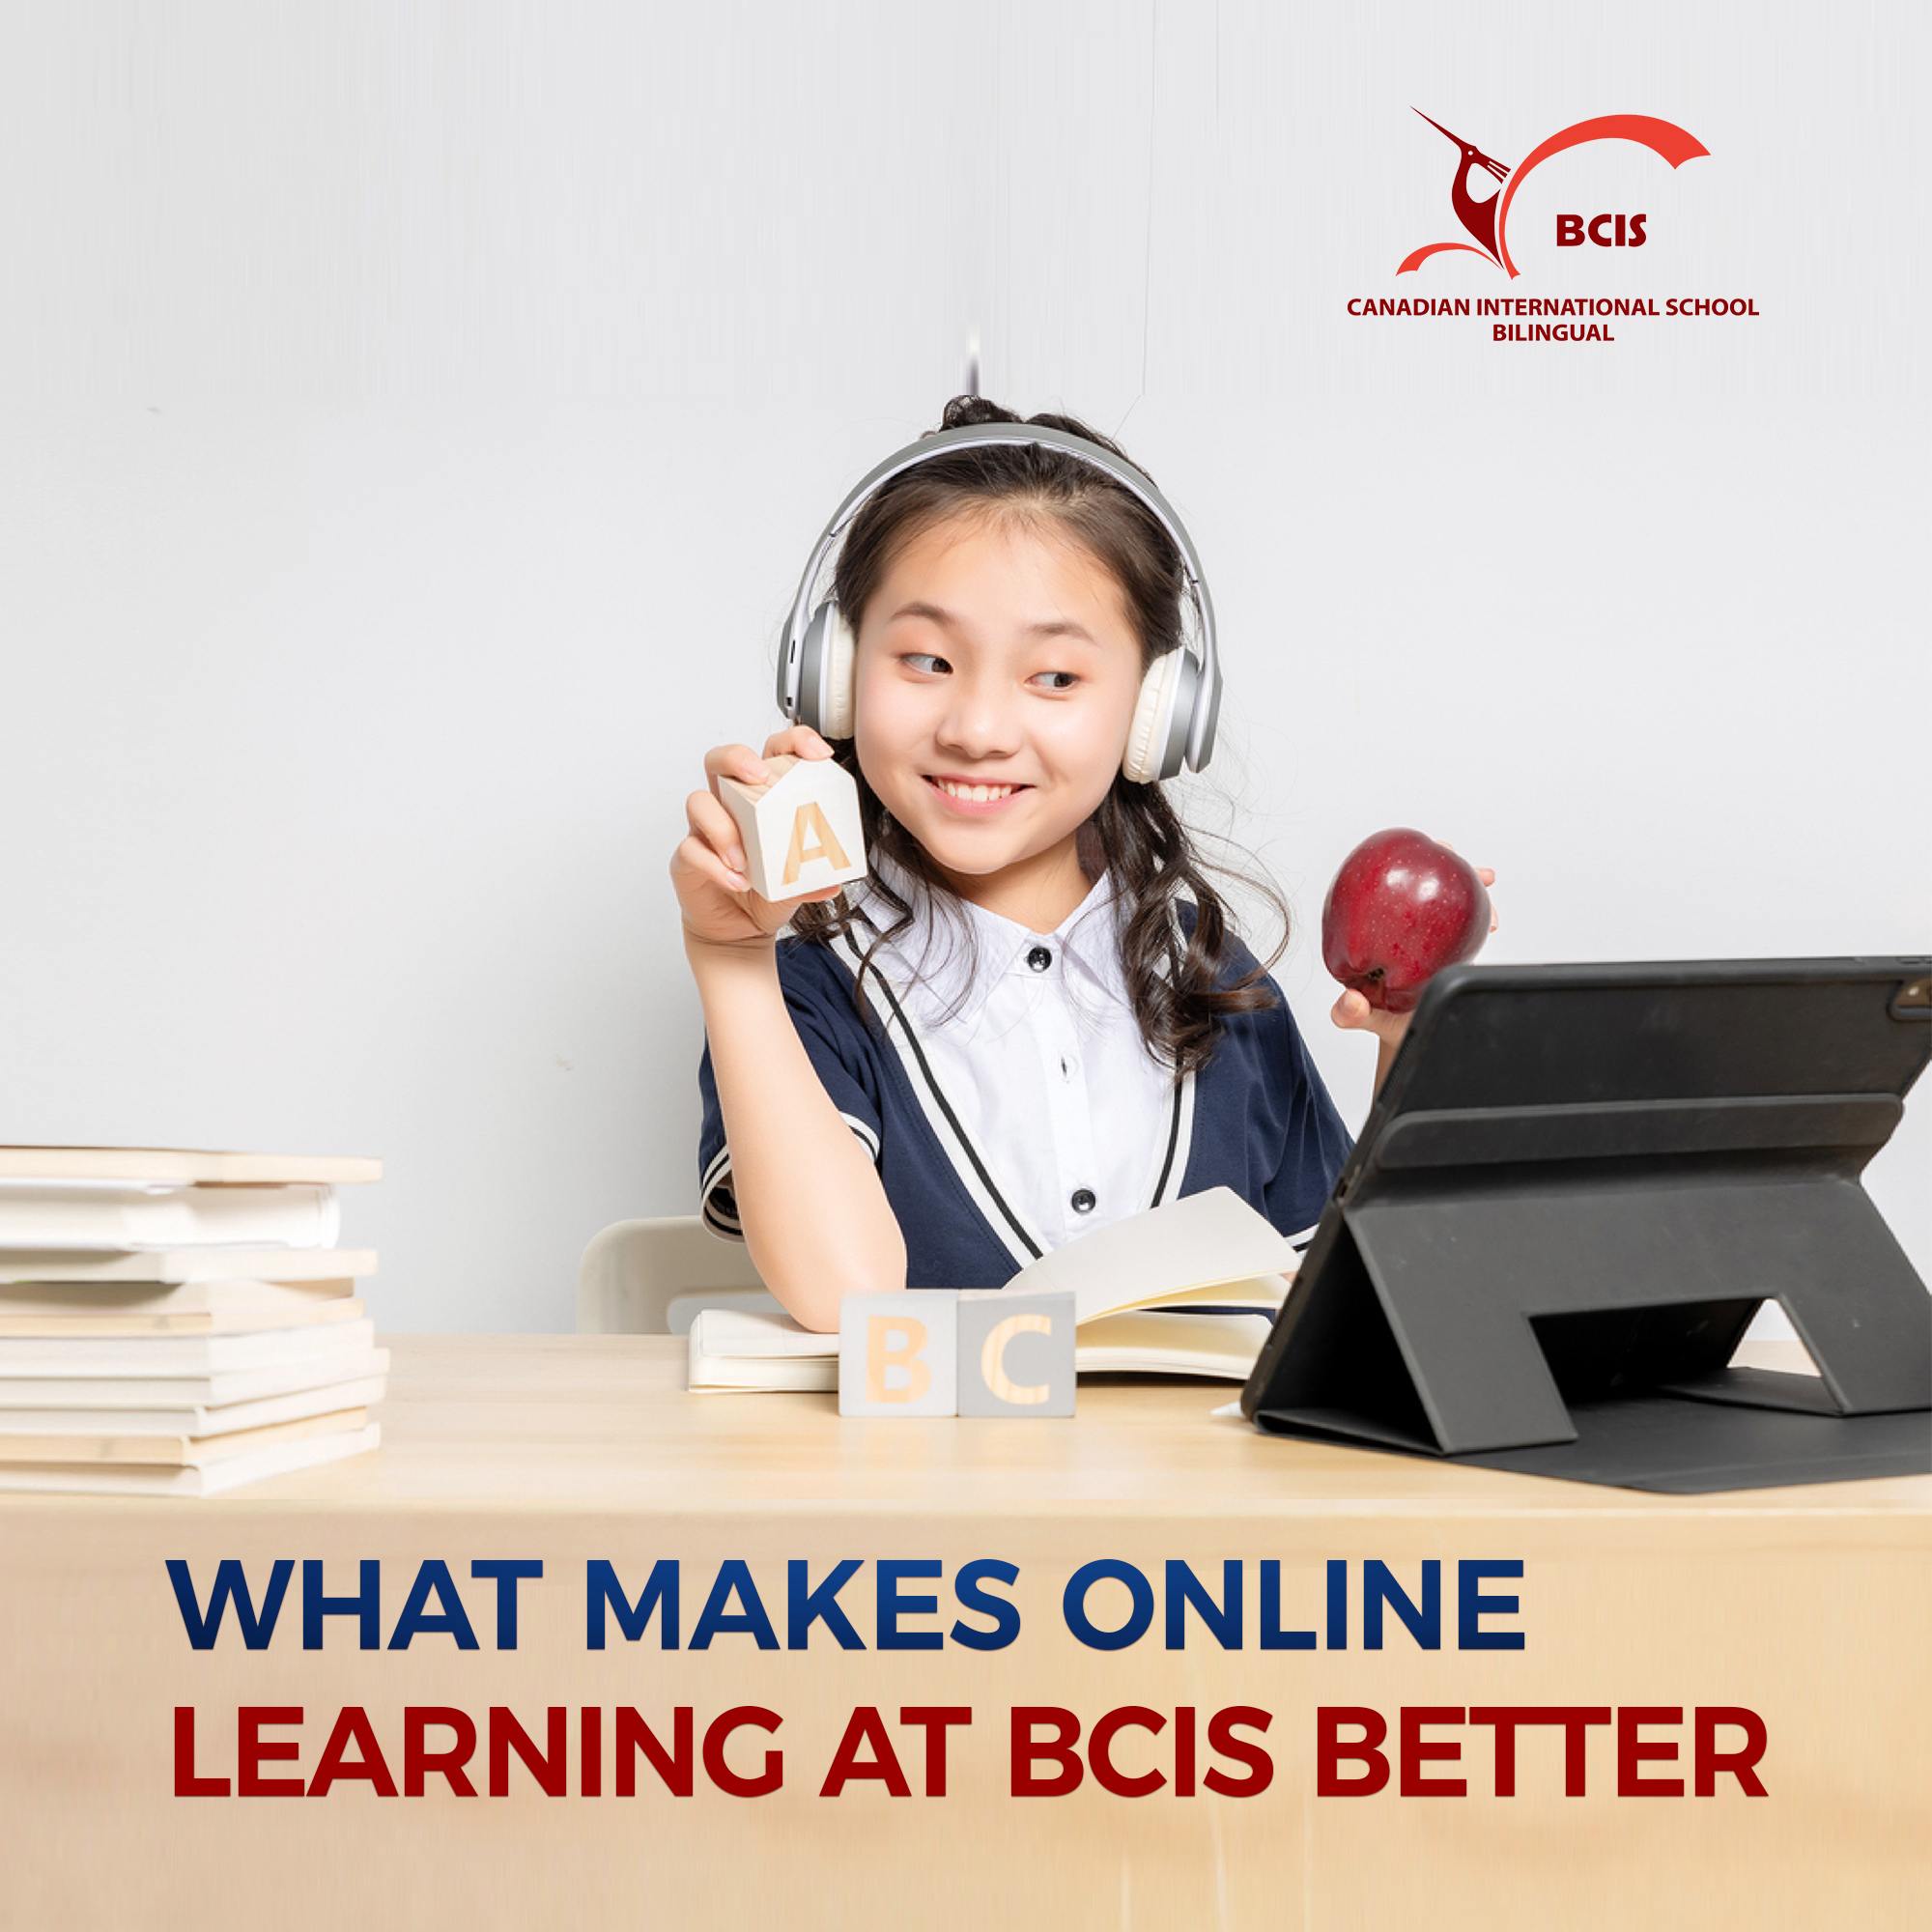 WHY SPECIFICALLY BCIS IS A BETTER CHOICE FOR ONLINE LEARNING?